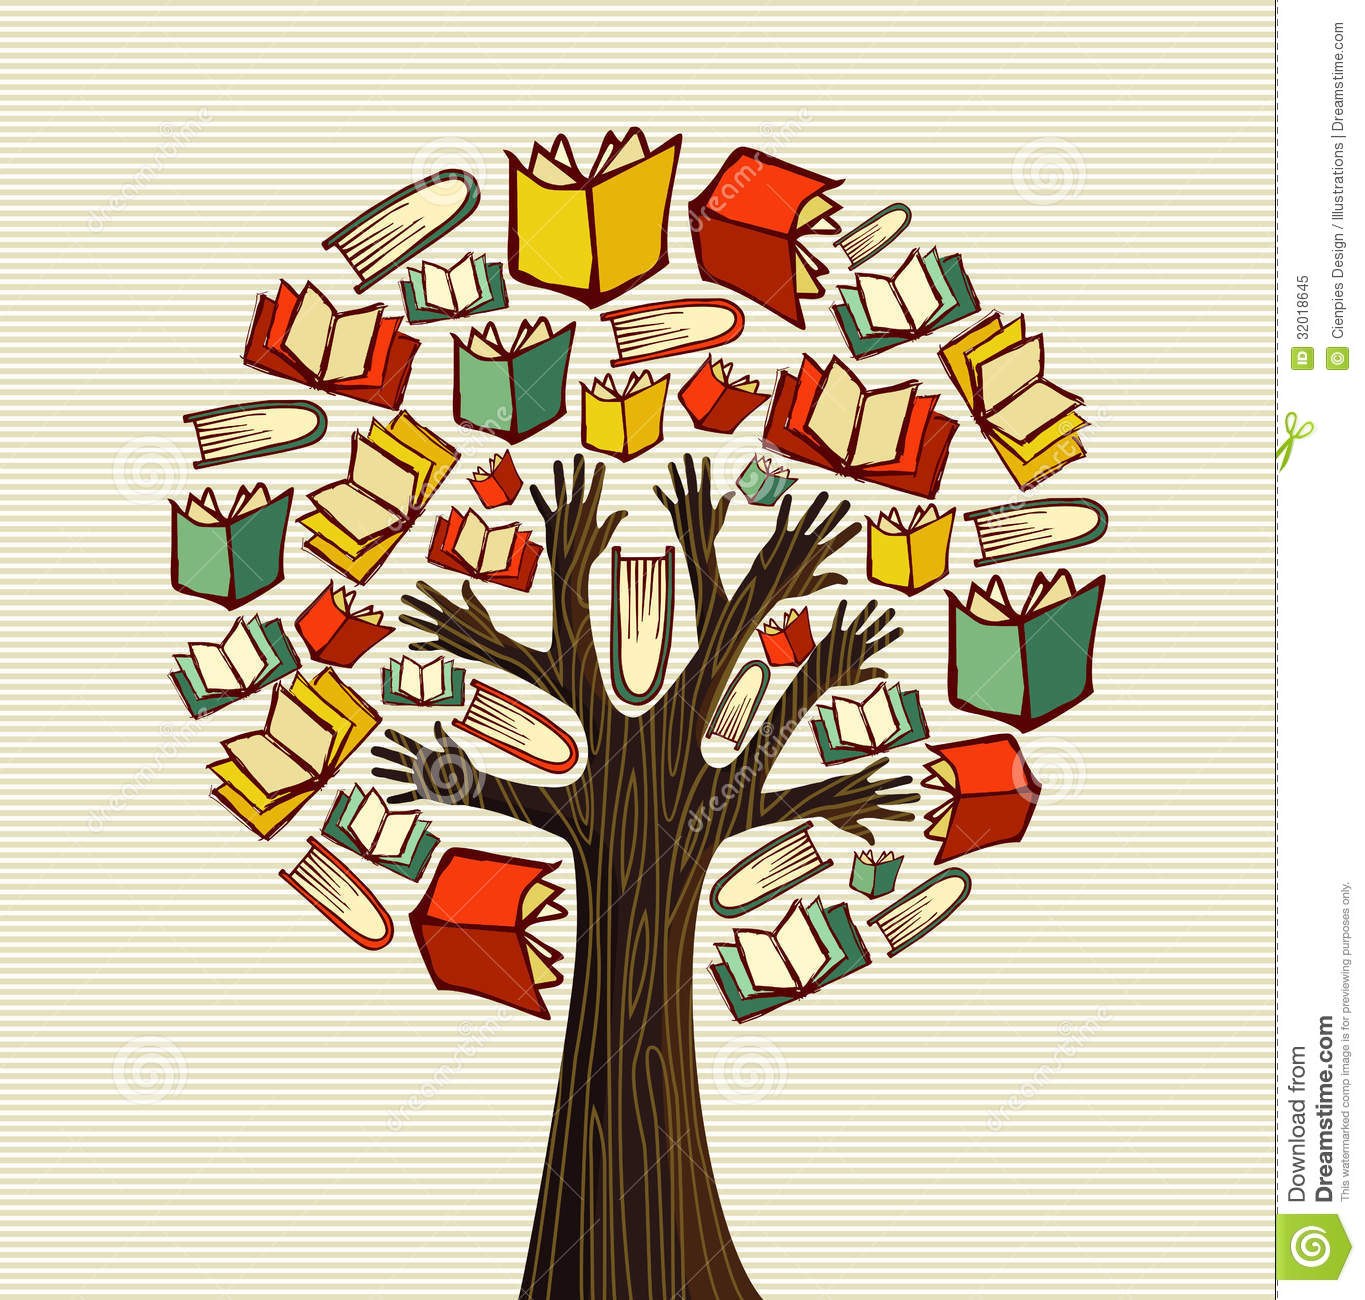 Concept Design Hand Books Tree Royalty Free Stock Photo ...